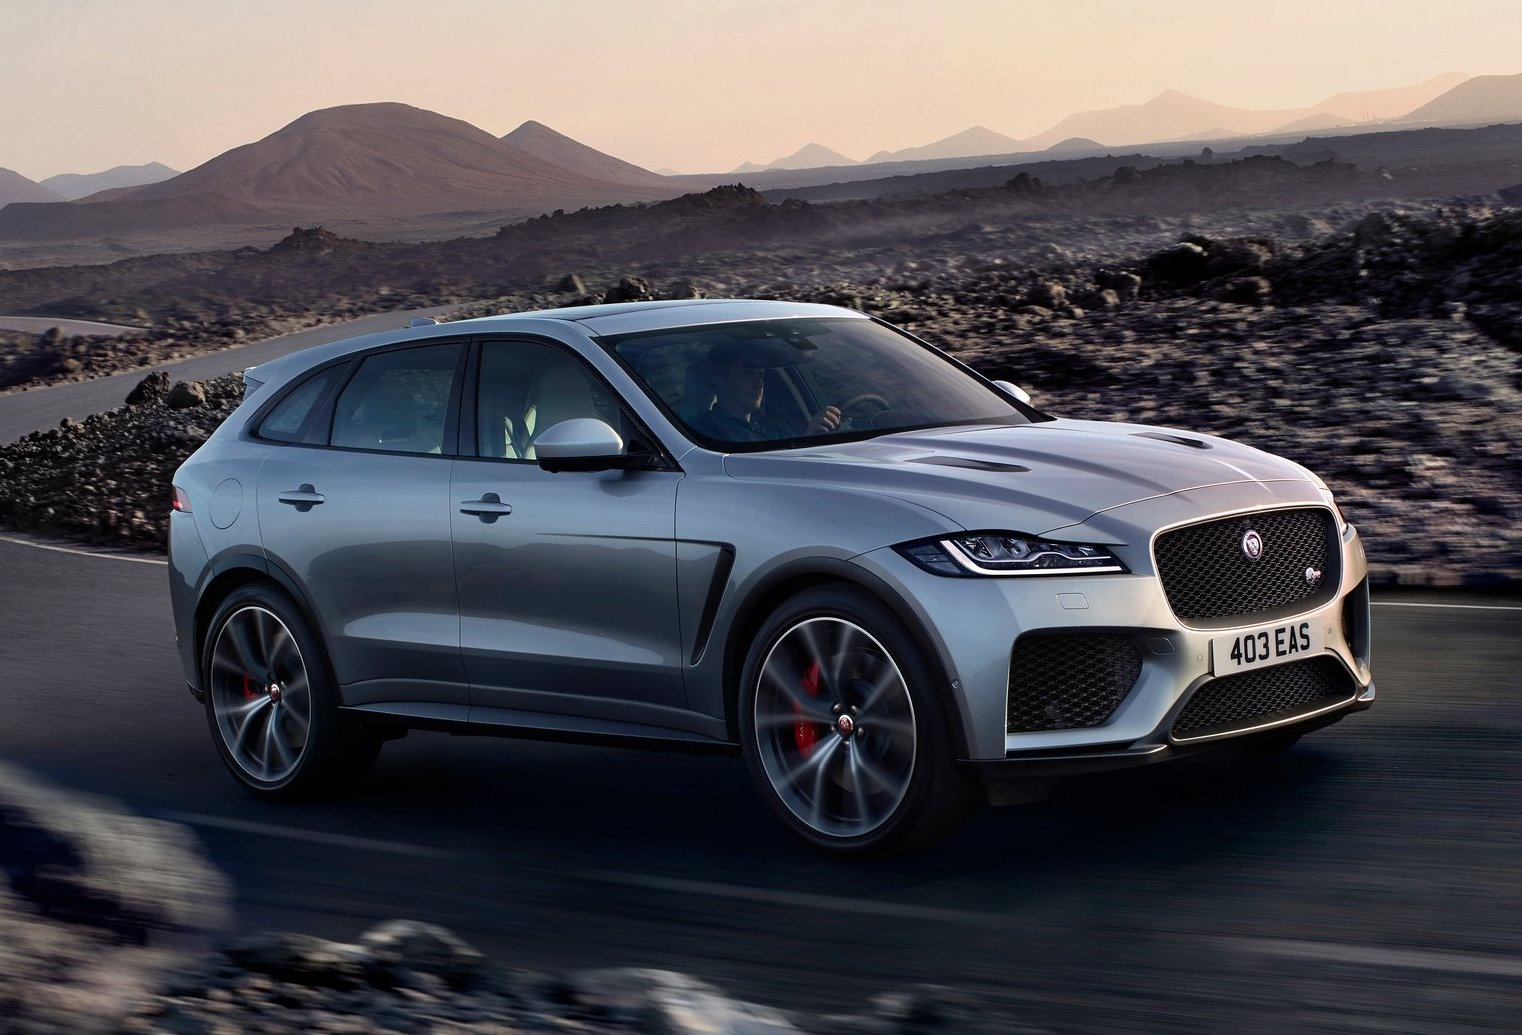 jaguar f pace svr revealed with potent supercharged v8. Black Bedroom Furniture Sets. Home Design Ideas